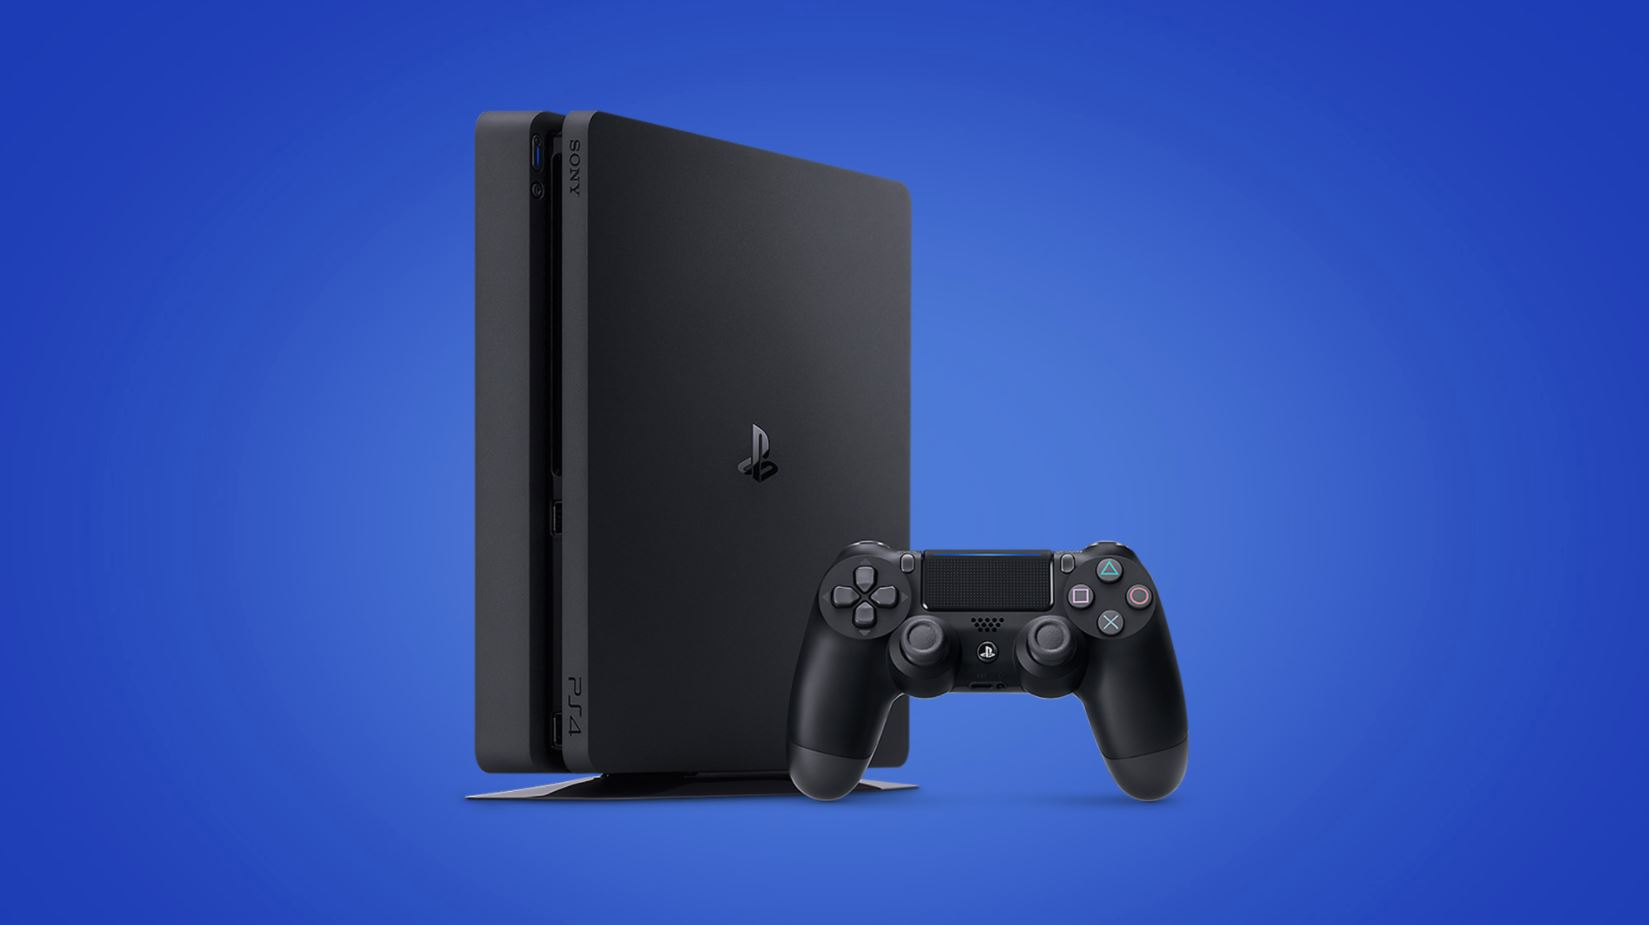 psa-you-probably-shouldnt-put-ps5-discs-into-your-ps4